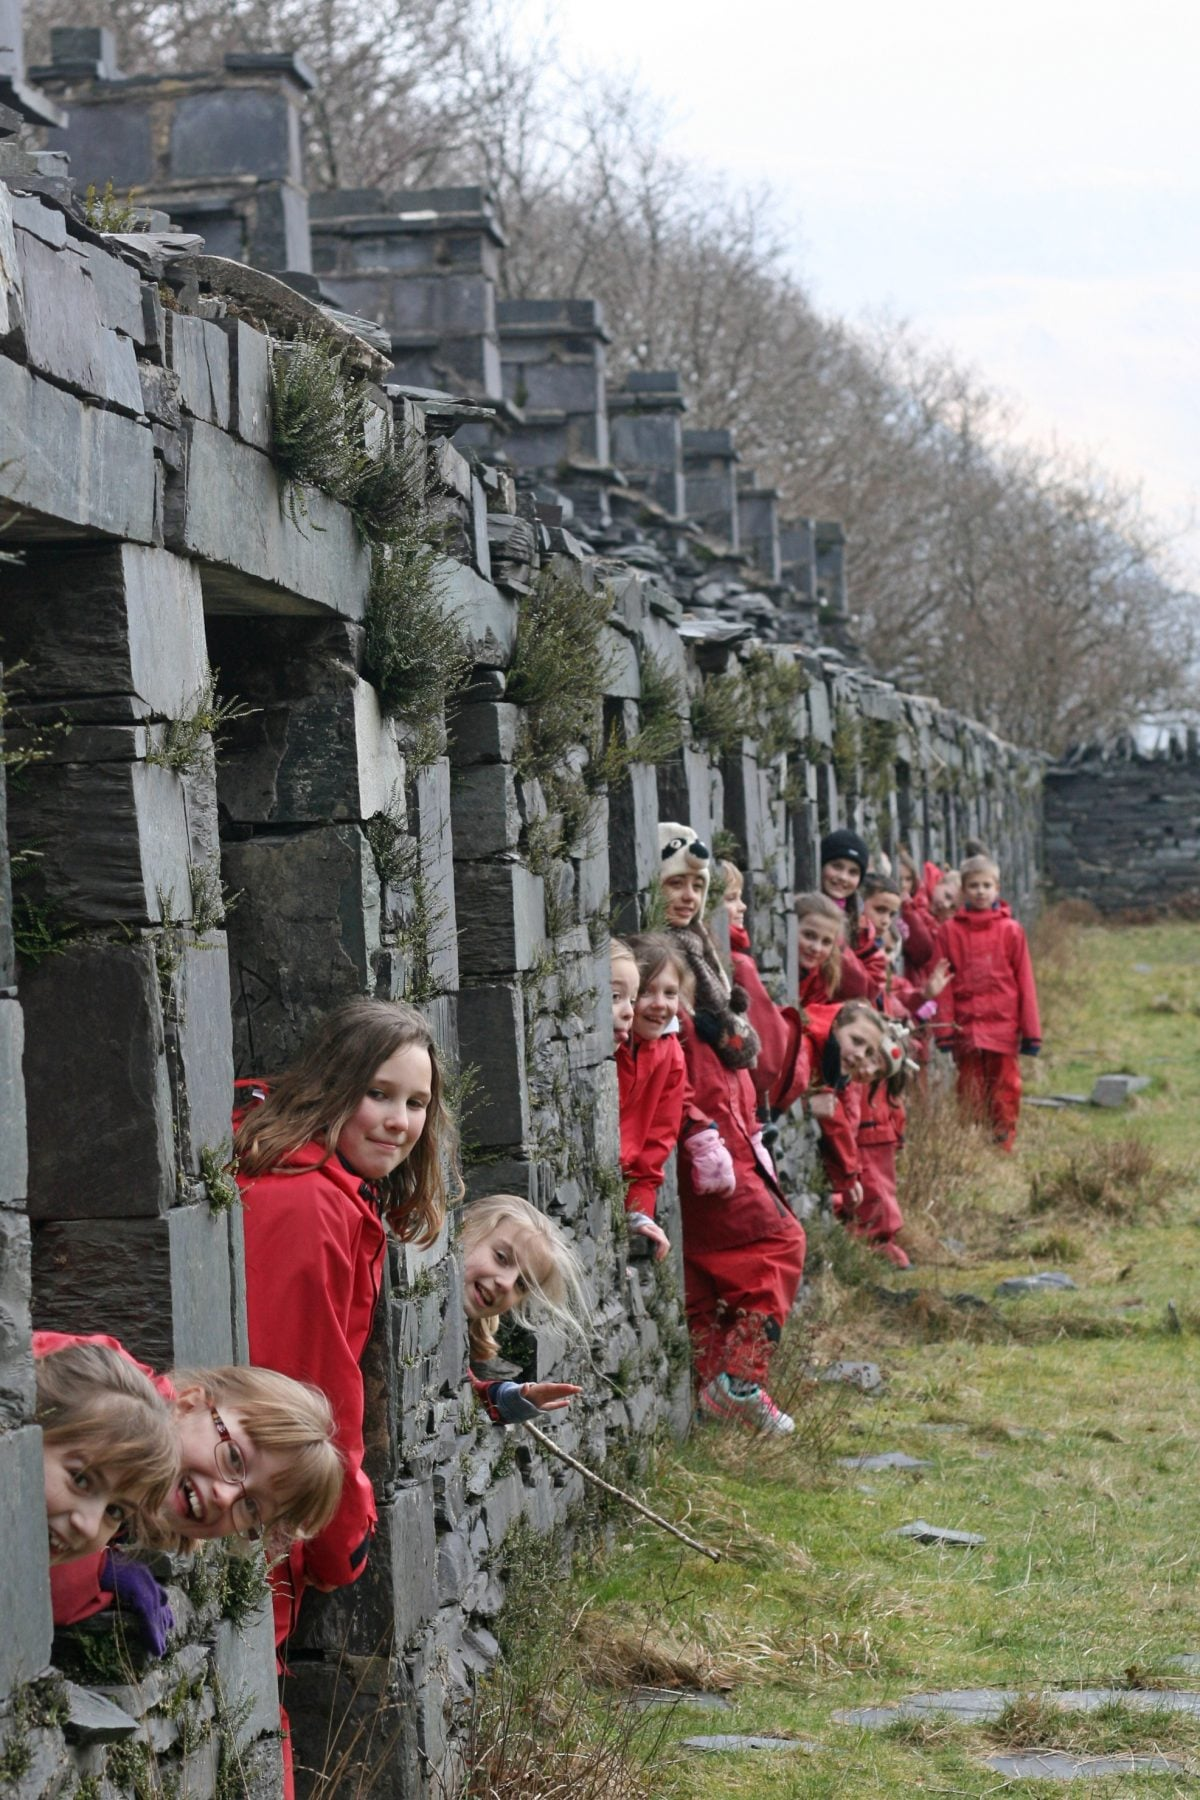 A group of children sticking heads out of windows of old slate houses